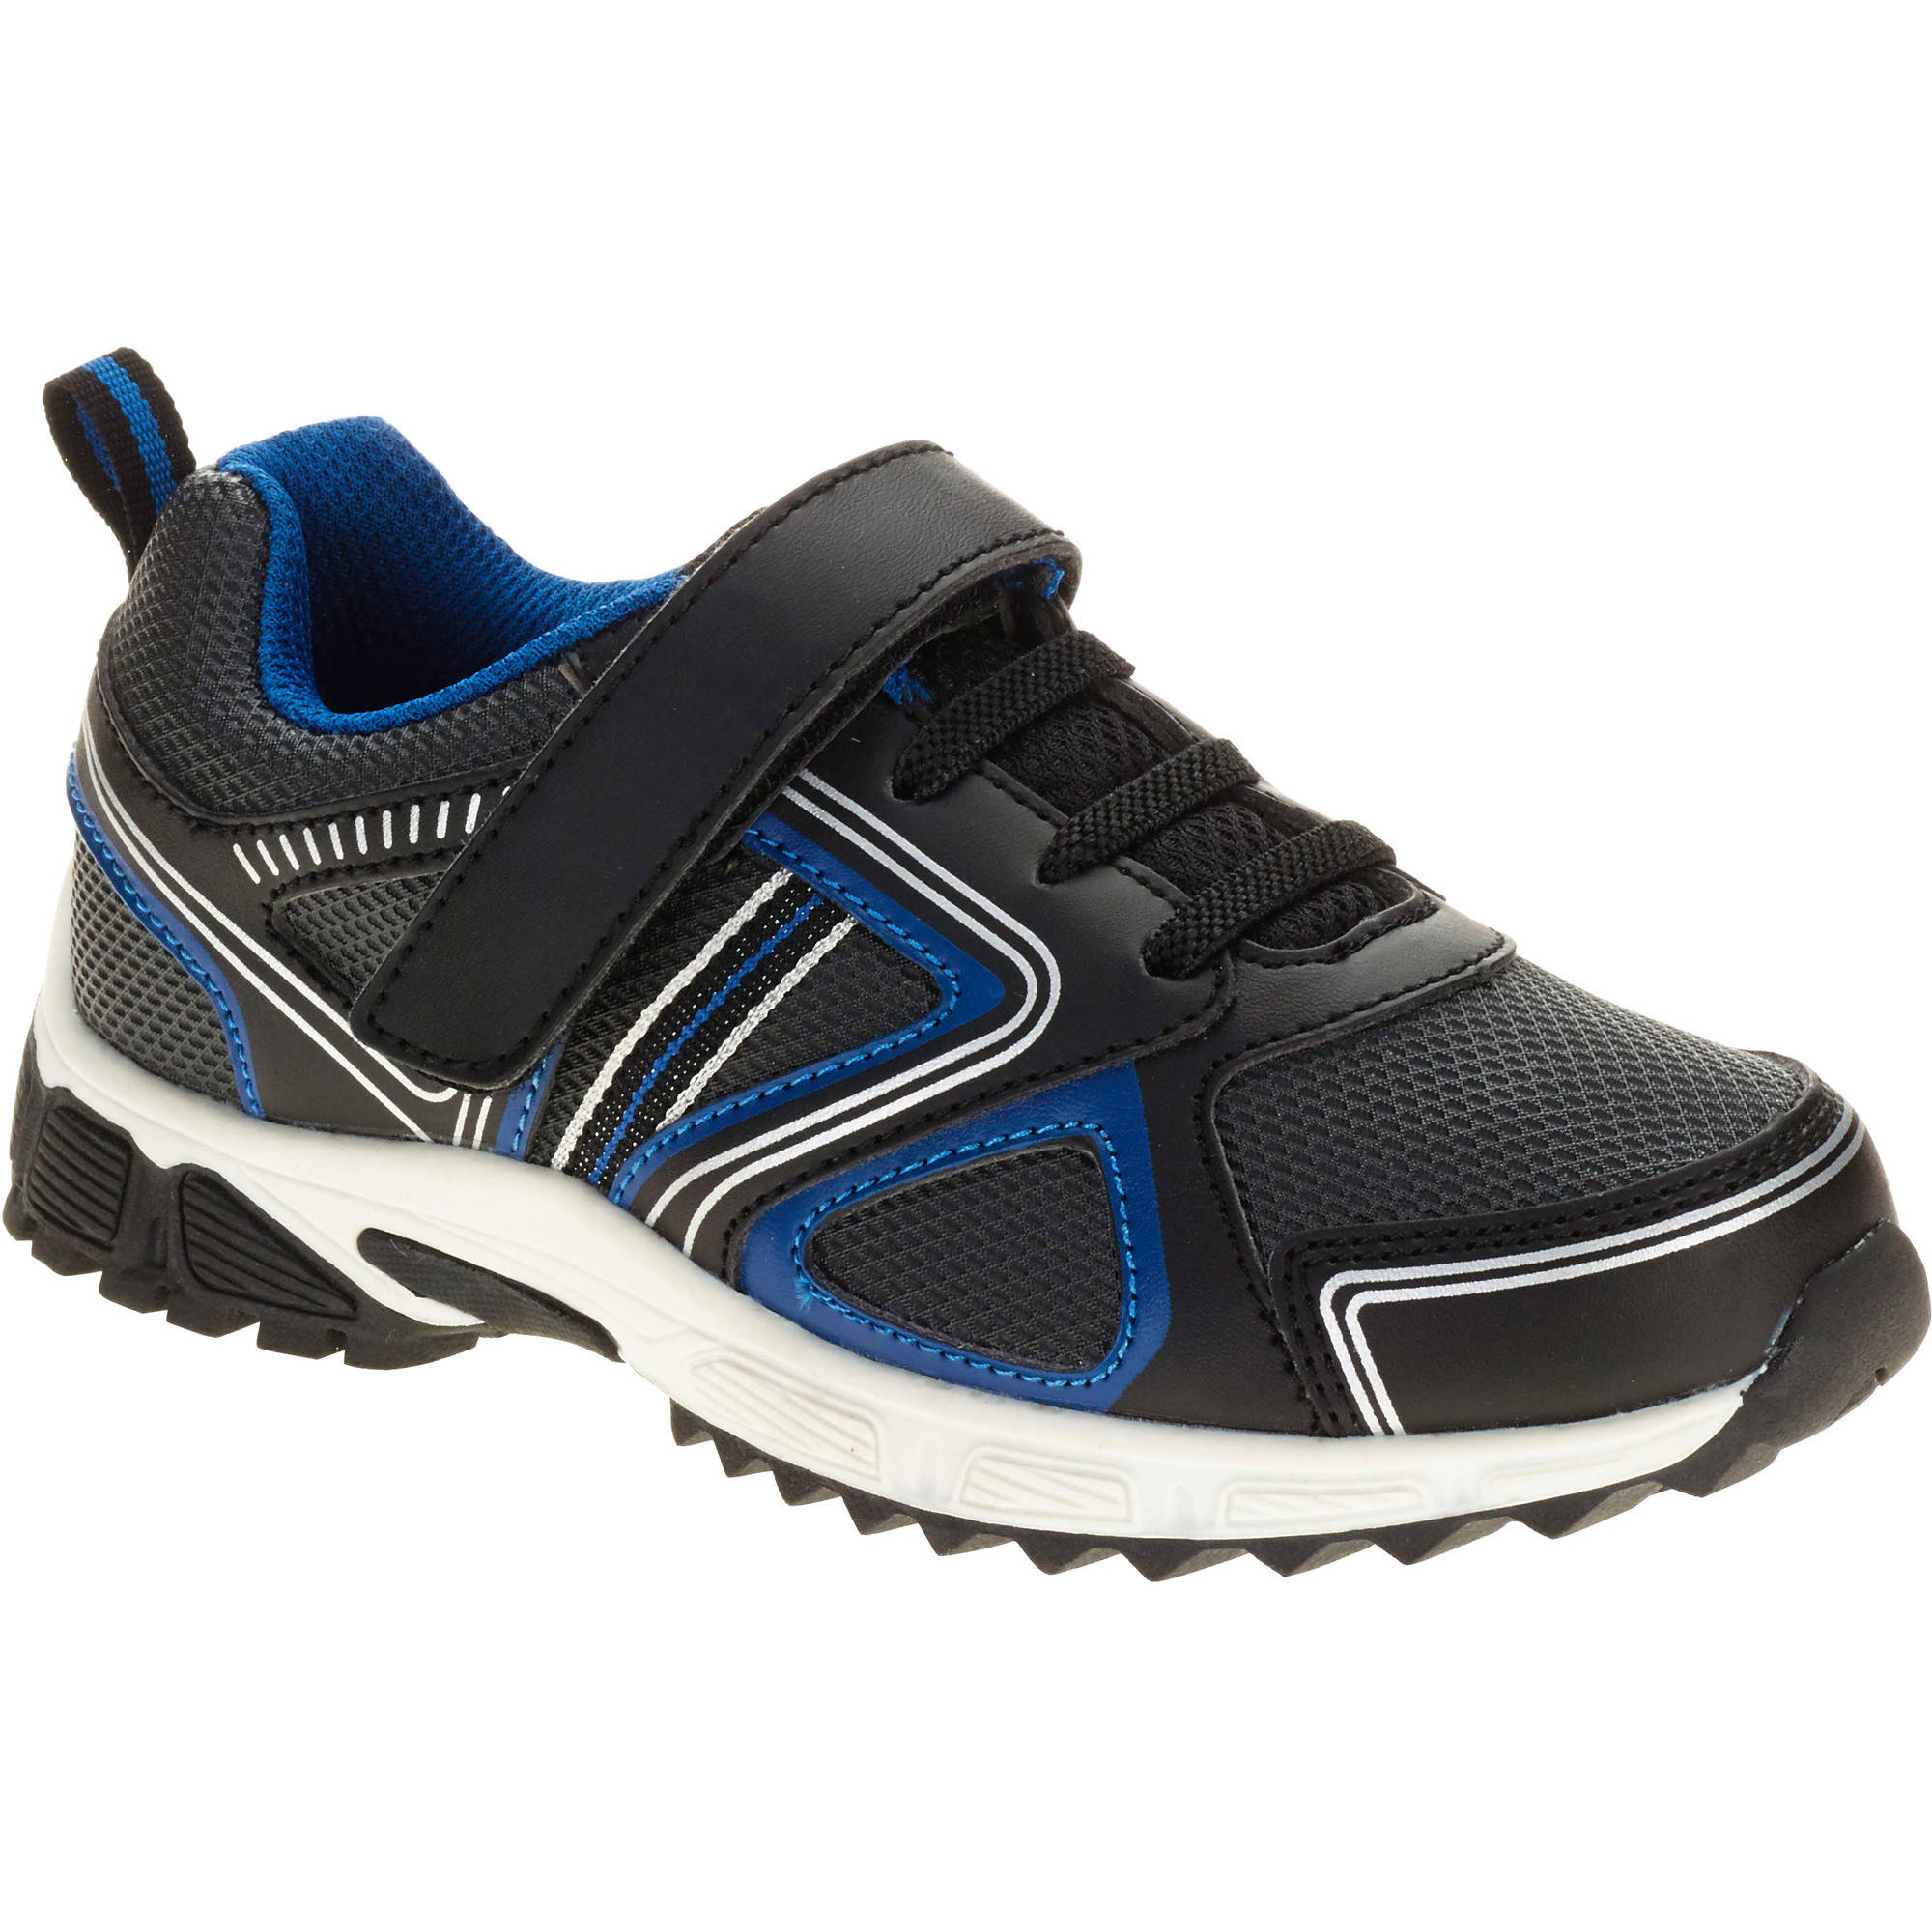 Starter Boys' Lightweight Athletic Shoe